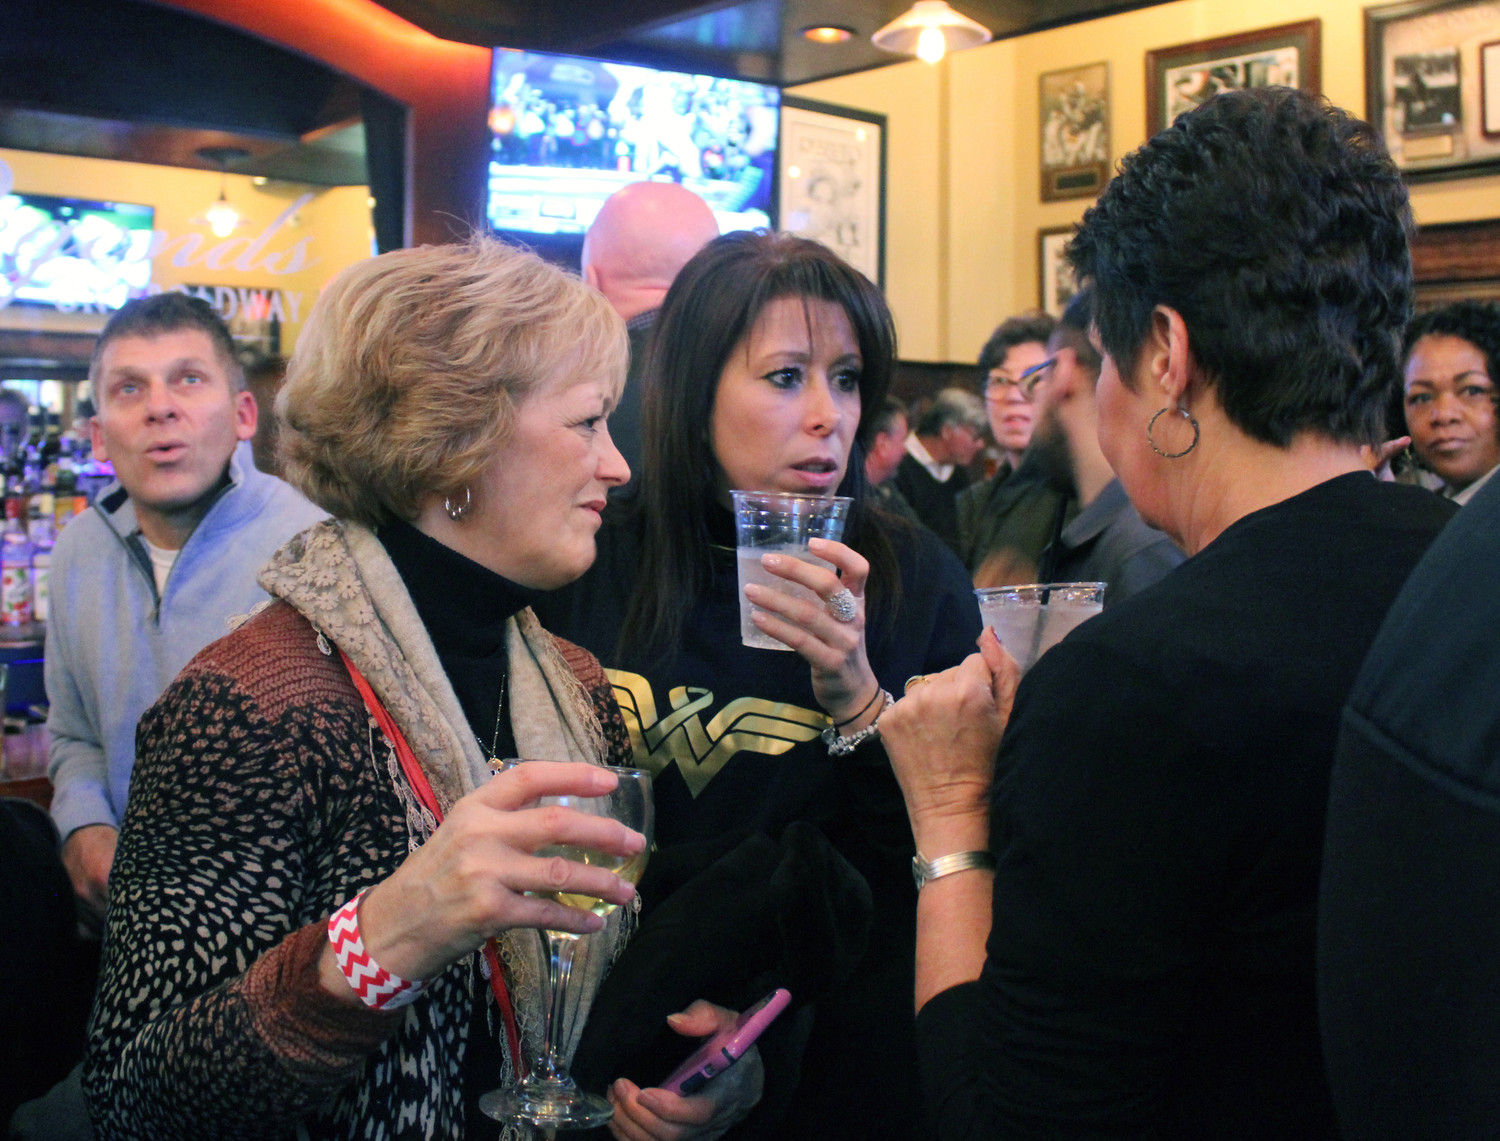 Diane Mucci, left, and Toni Valente are both co-workers with Millie Jones at the First National Bank of Long Island. They attended a Jan. 15 fundraiser for her at Legends of Broadway in Hicksville.